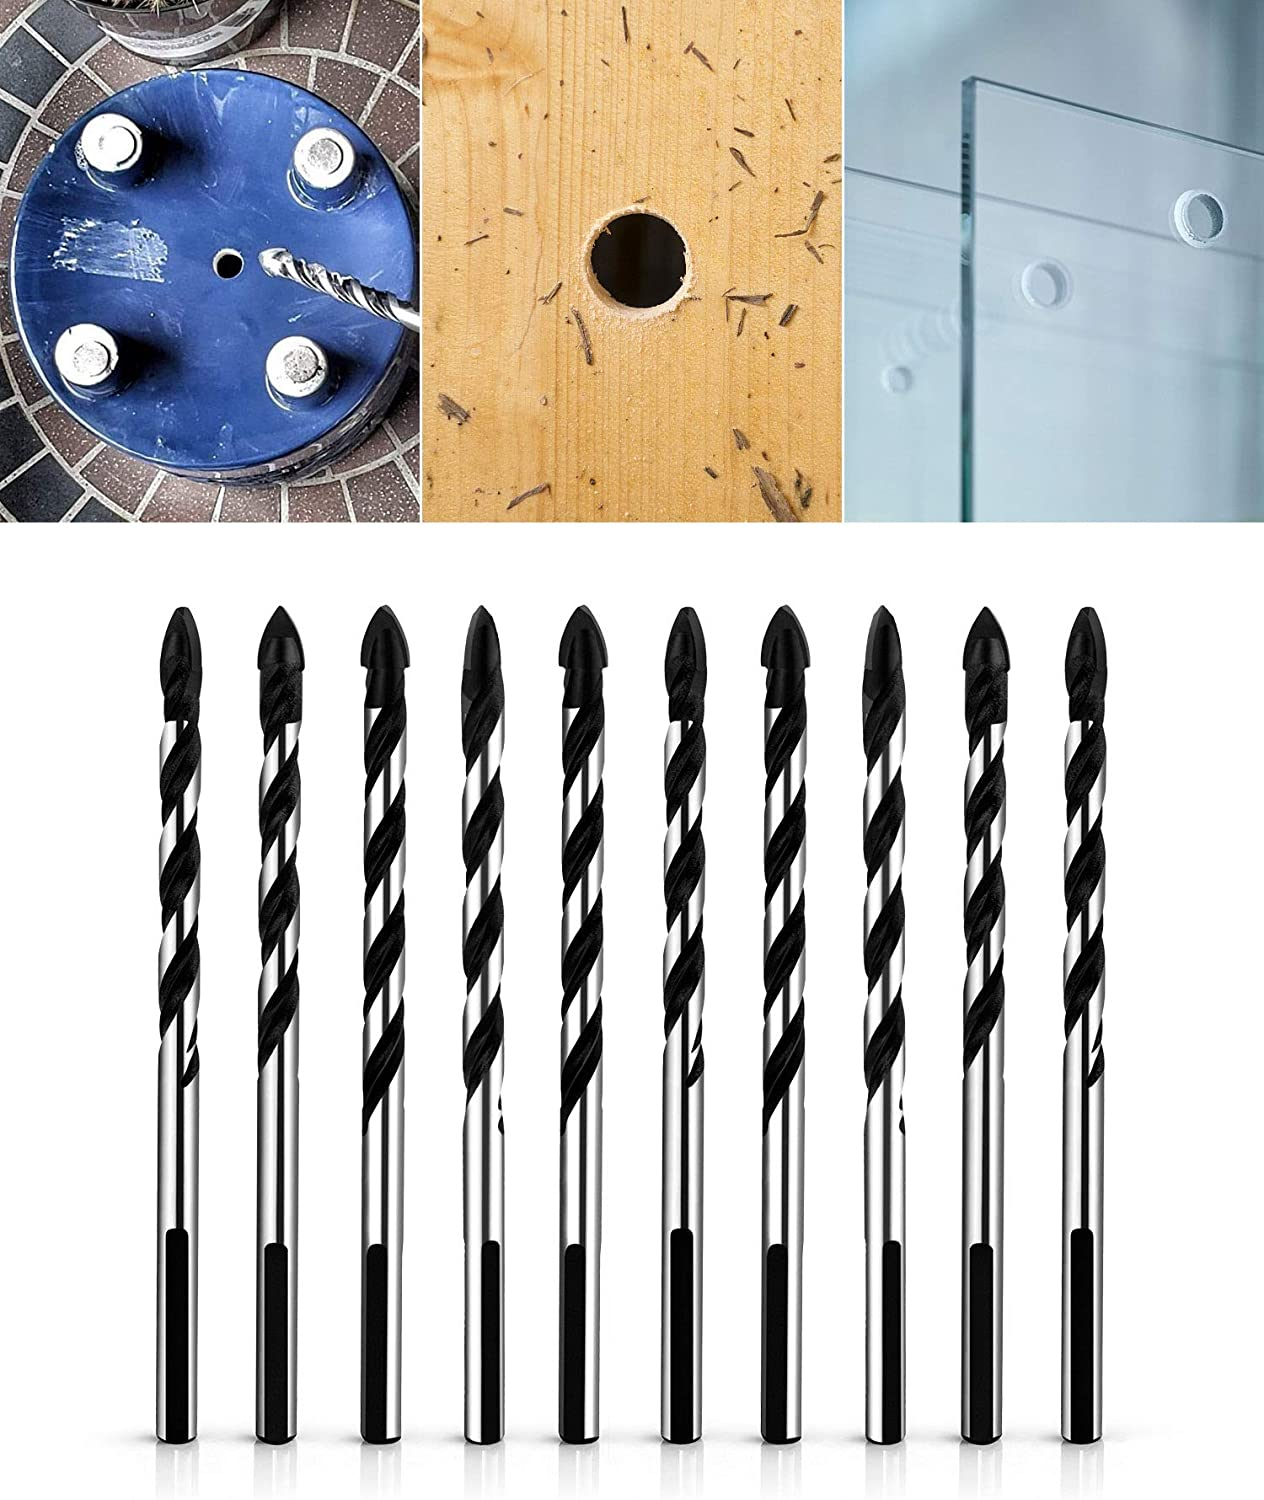 QWORK 5 Pcs Set (6, 6, 8, 10, 12mm) Multi-Material Drill Bit Set for Tile, Concrete, Brick, Glass, Plastic and Wood Tungsten Carbide Tip Best for Wall Mirror and Ceramic Tile on Concrete and Brick Wall - -